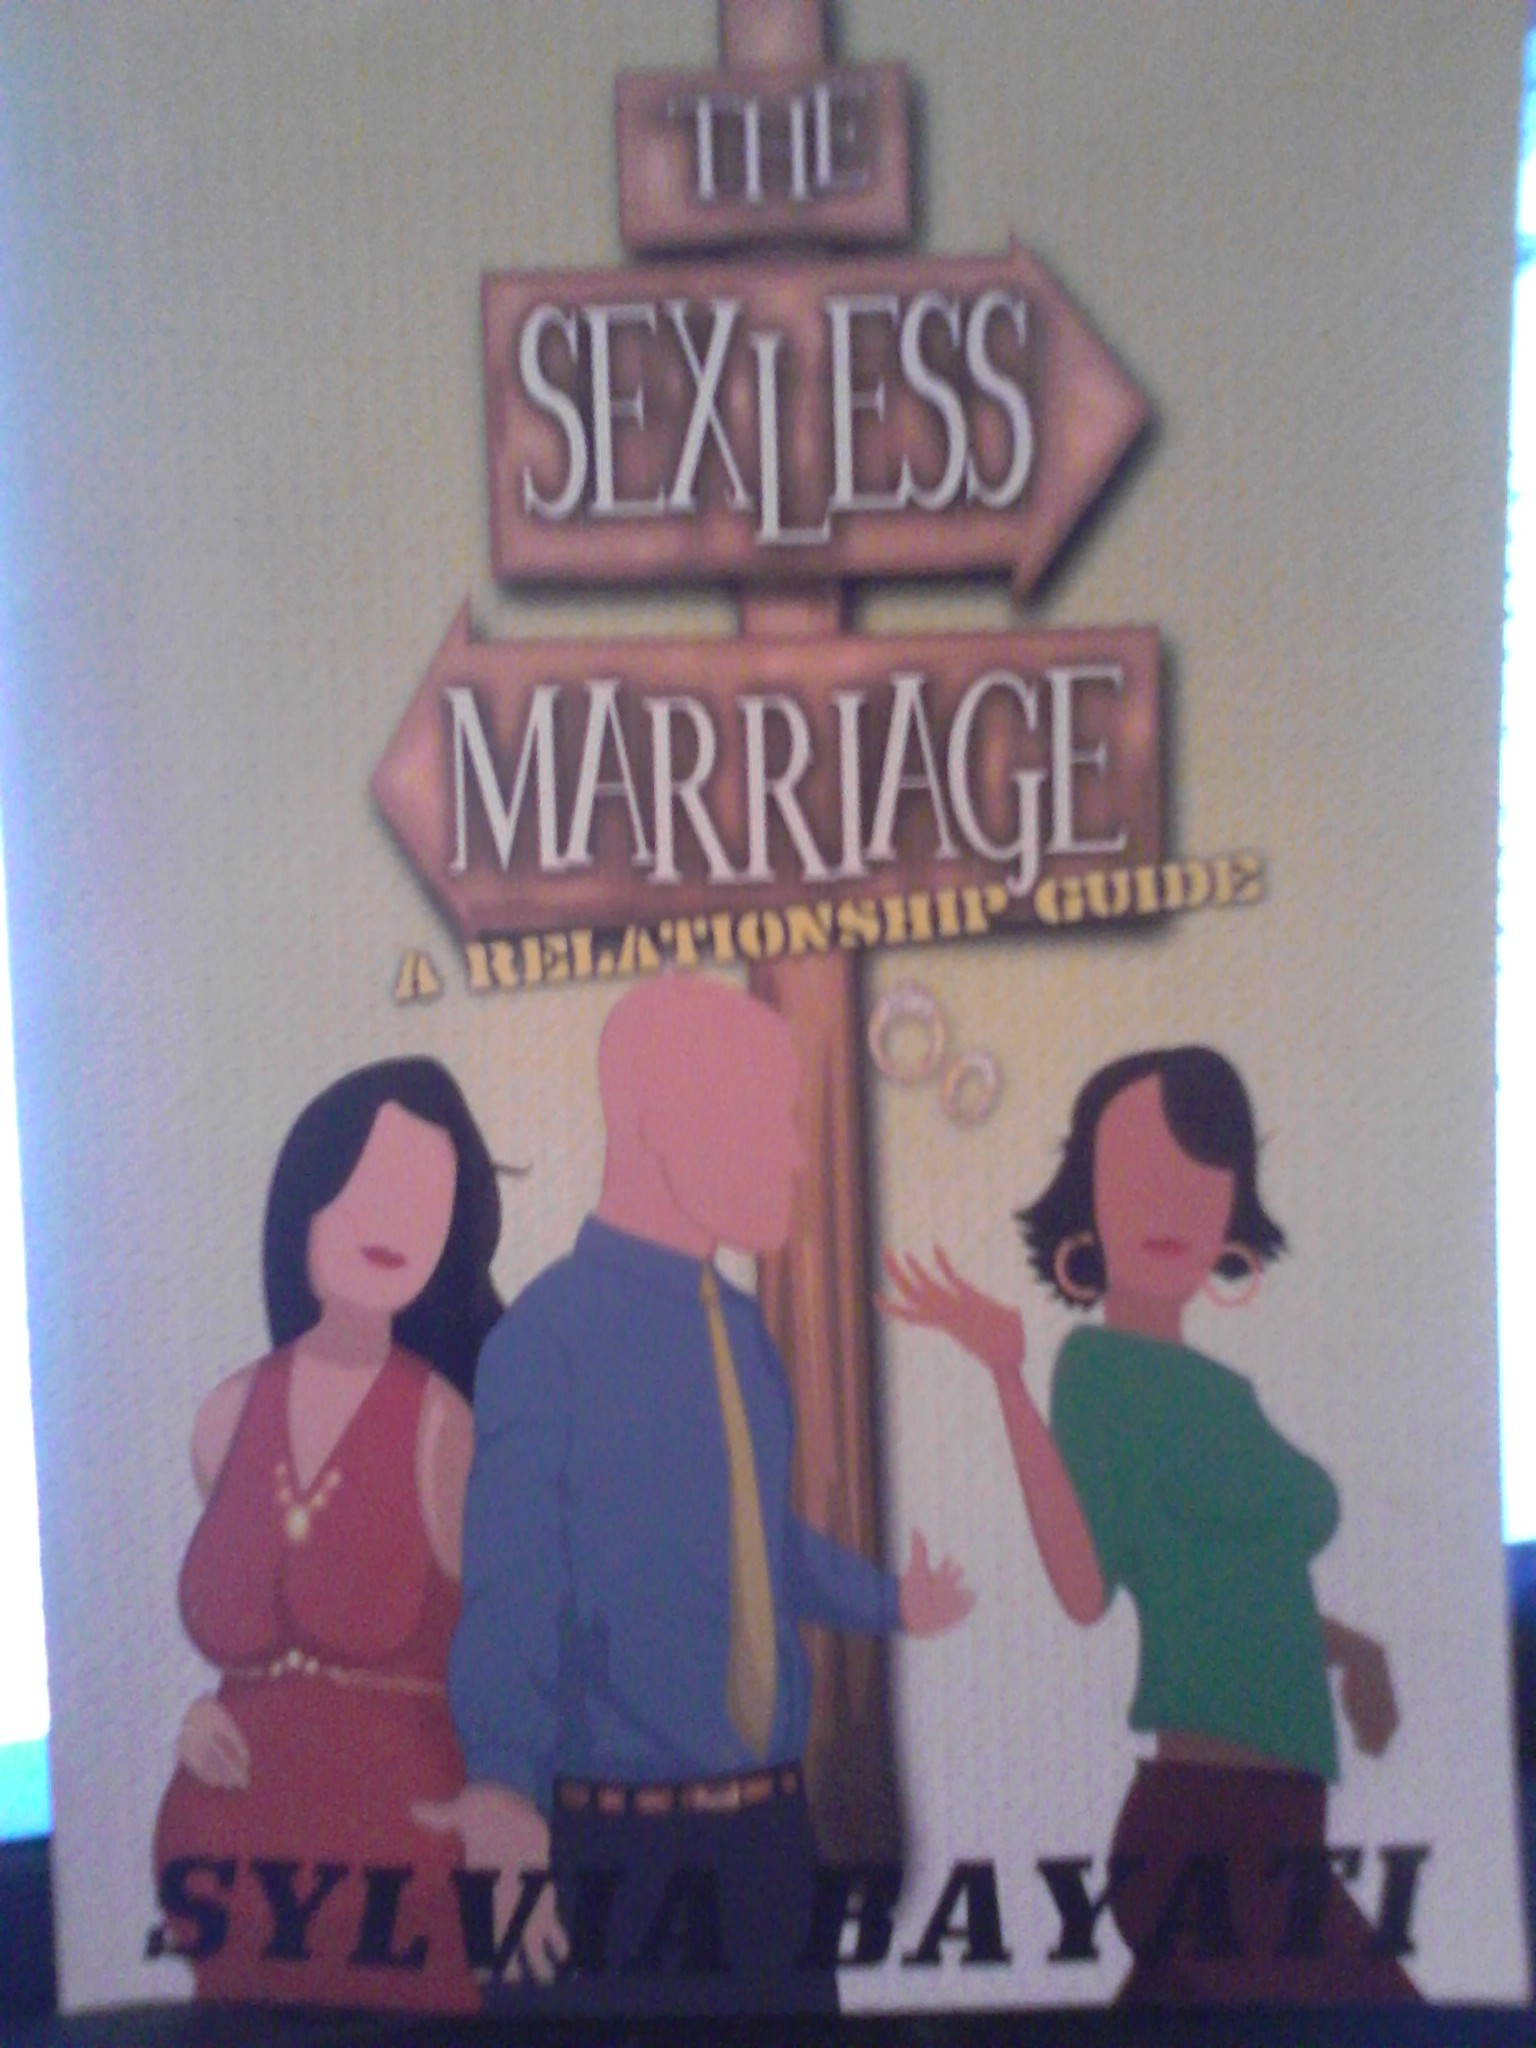 The Sexless Marriage A Relationship Guide Sylvia Bayati